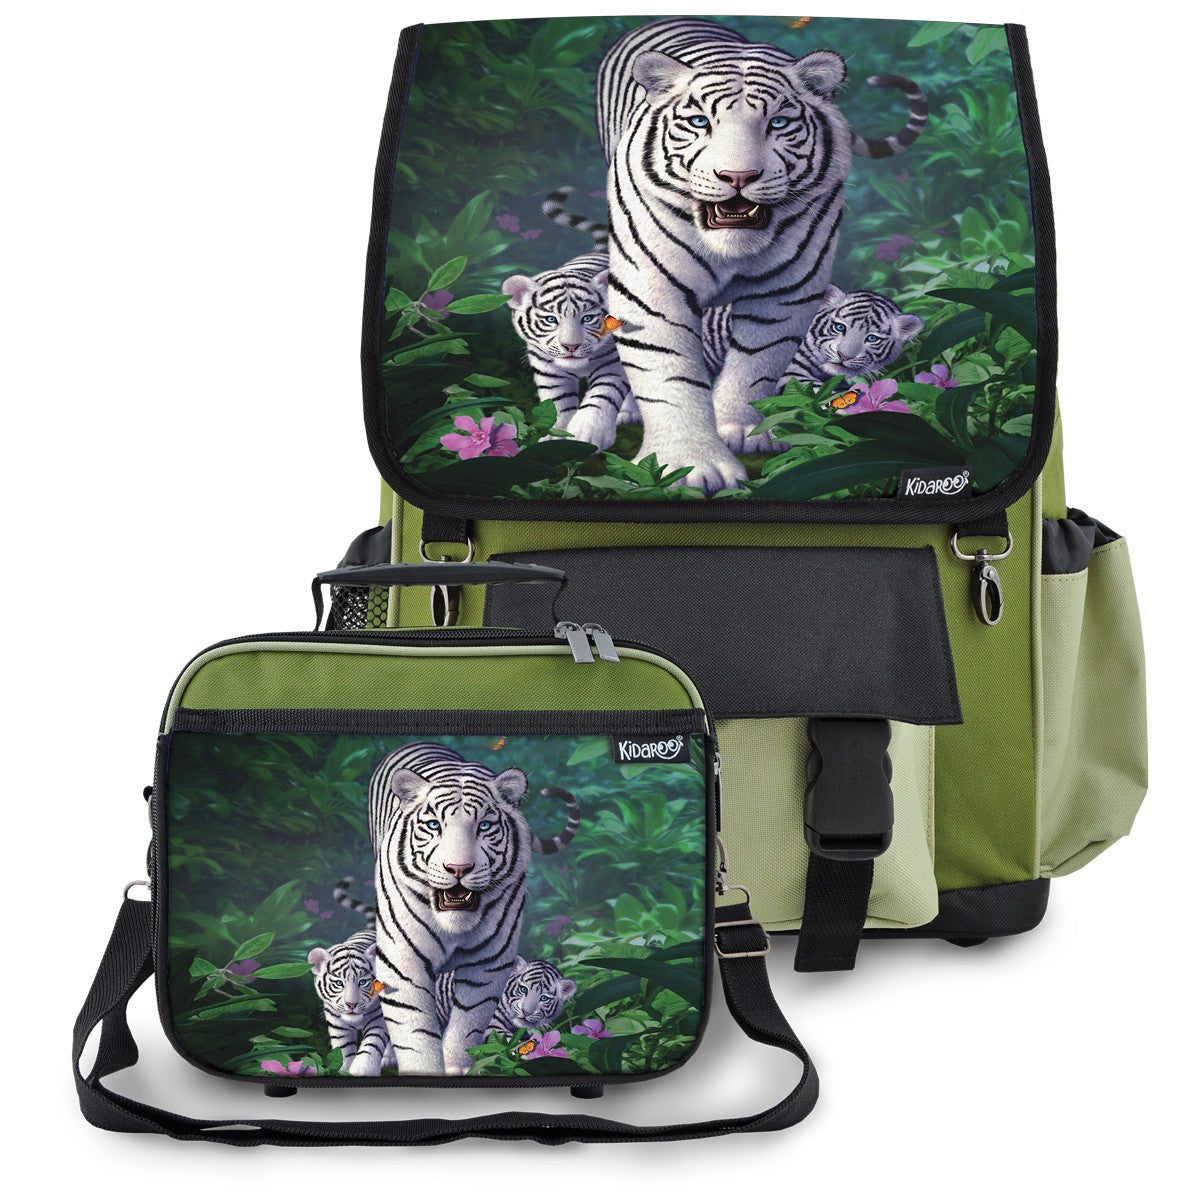 Kidaroo Khaki Green White Tiger & Cubs School Backpack & Lunchbox Set for Boys, Girls, Kids